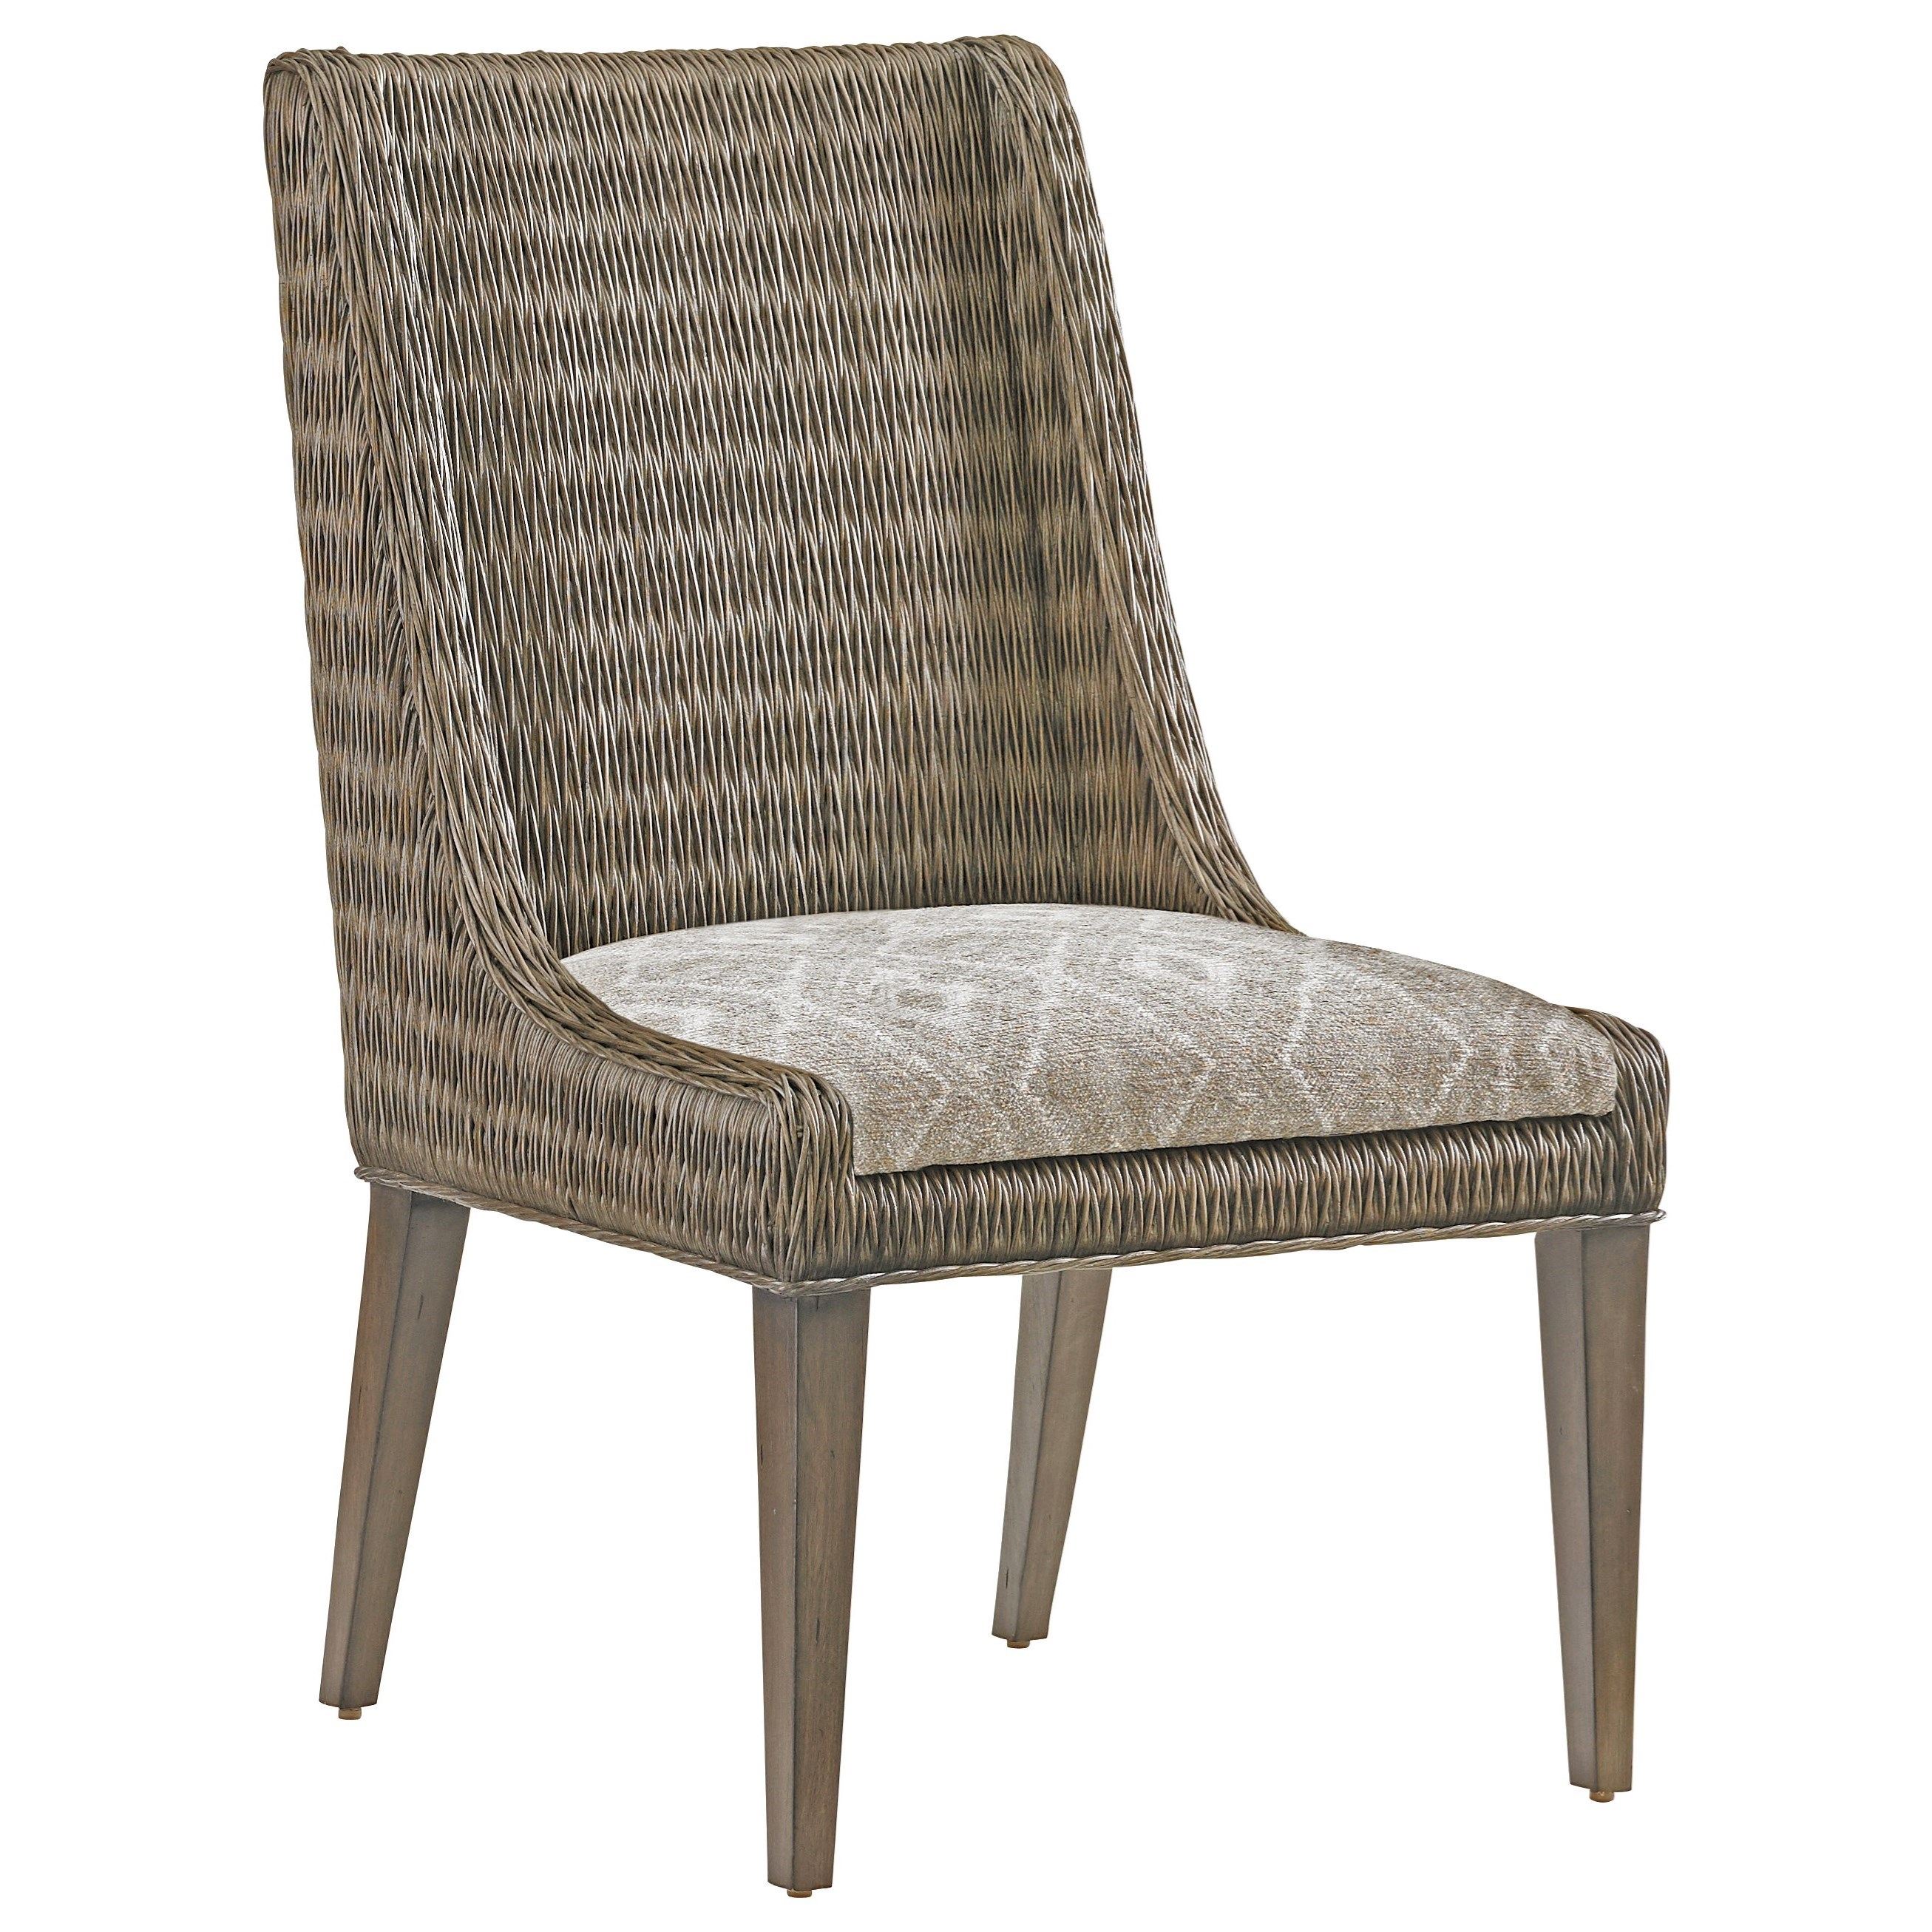 Cypress Point Brandon Woven Side Chair Custom by Tommy Bahama Home at Baer's Furniture